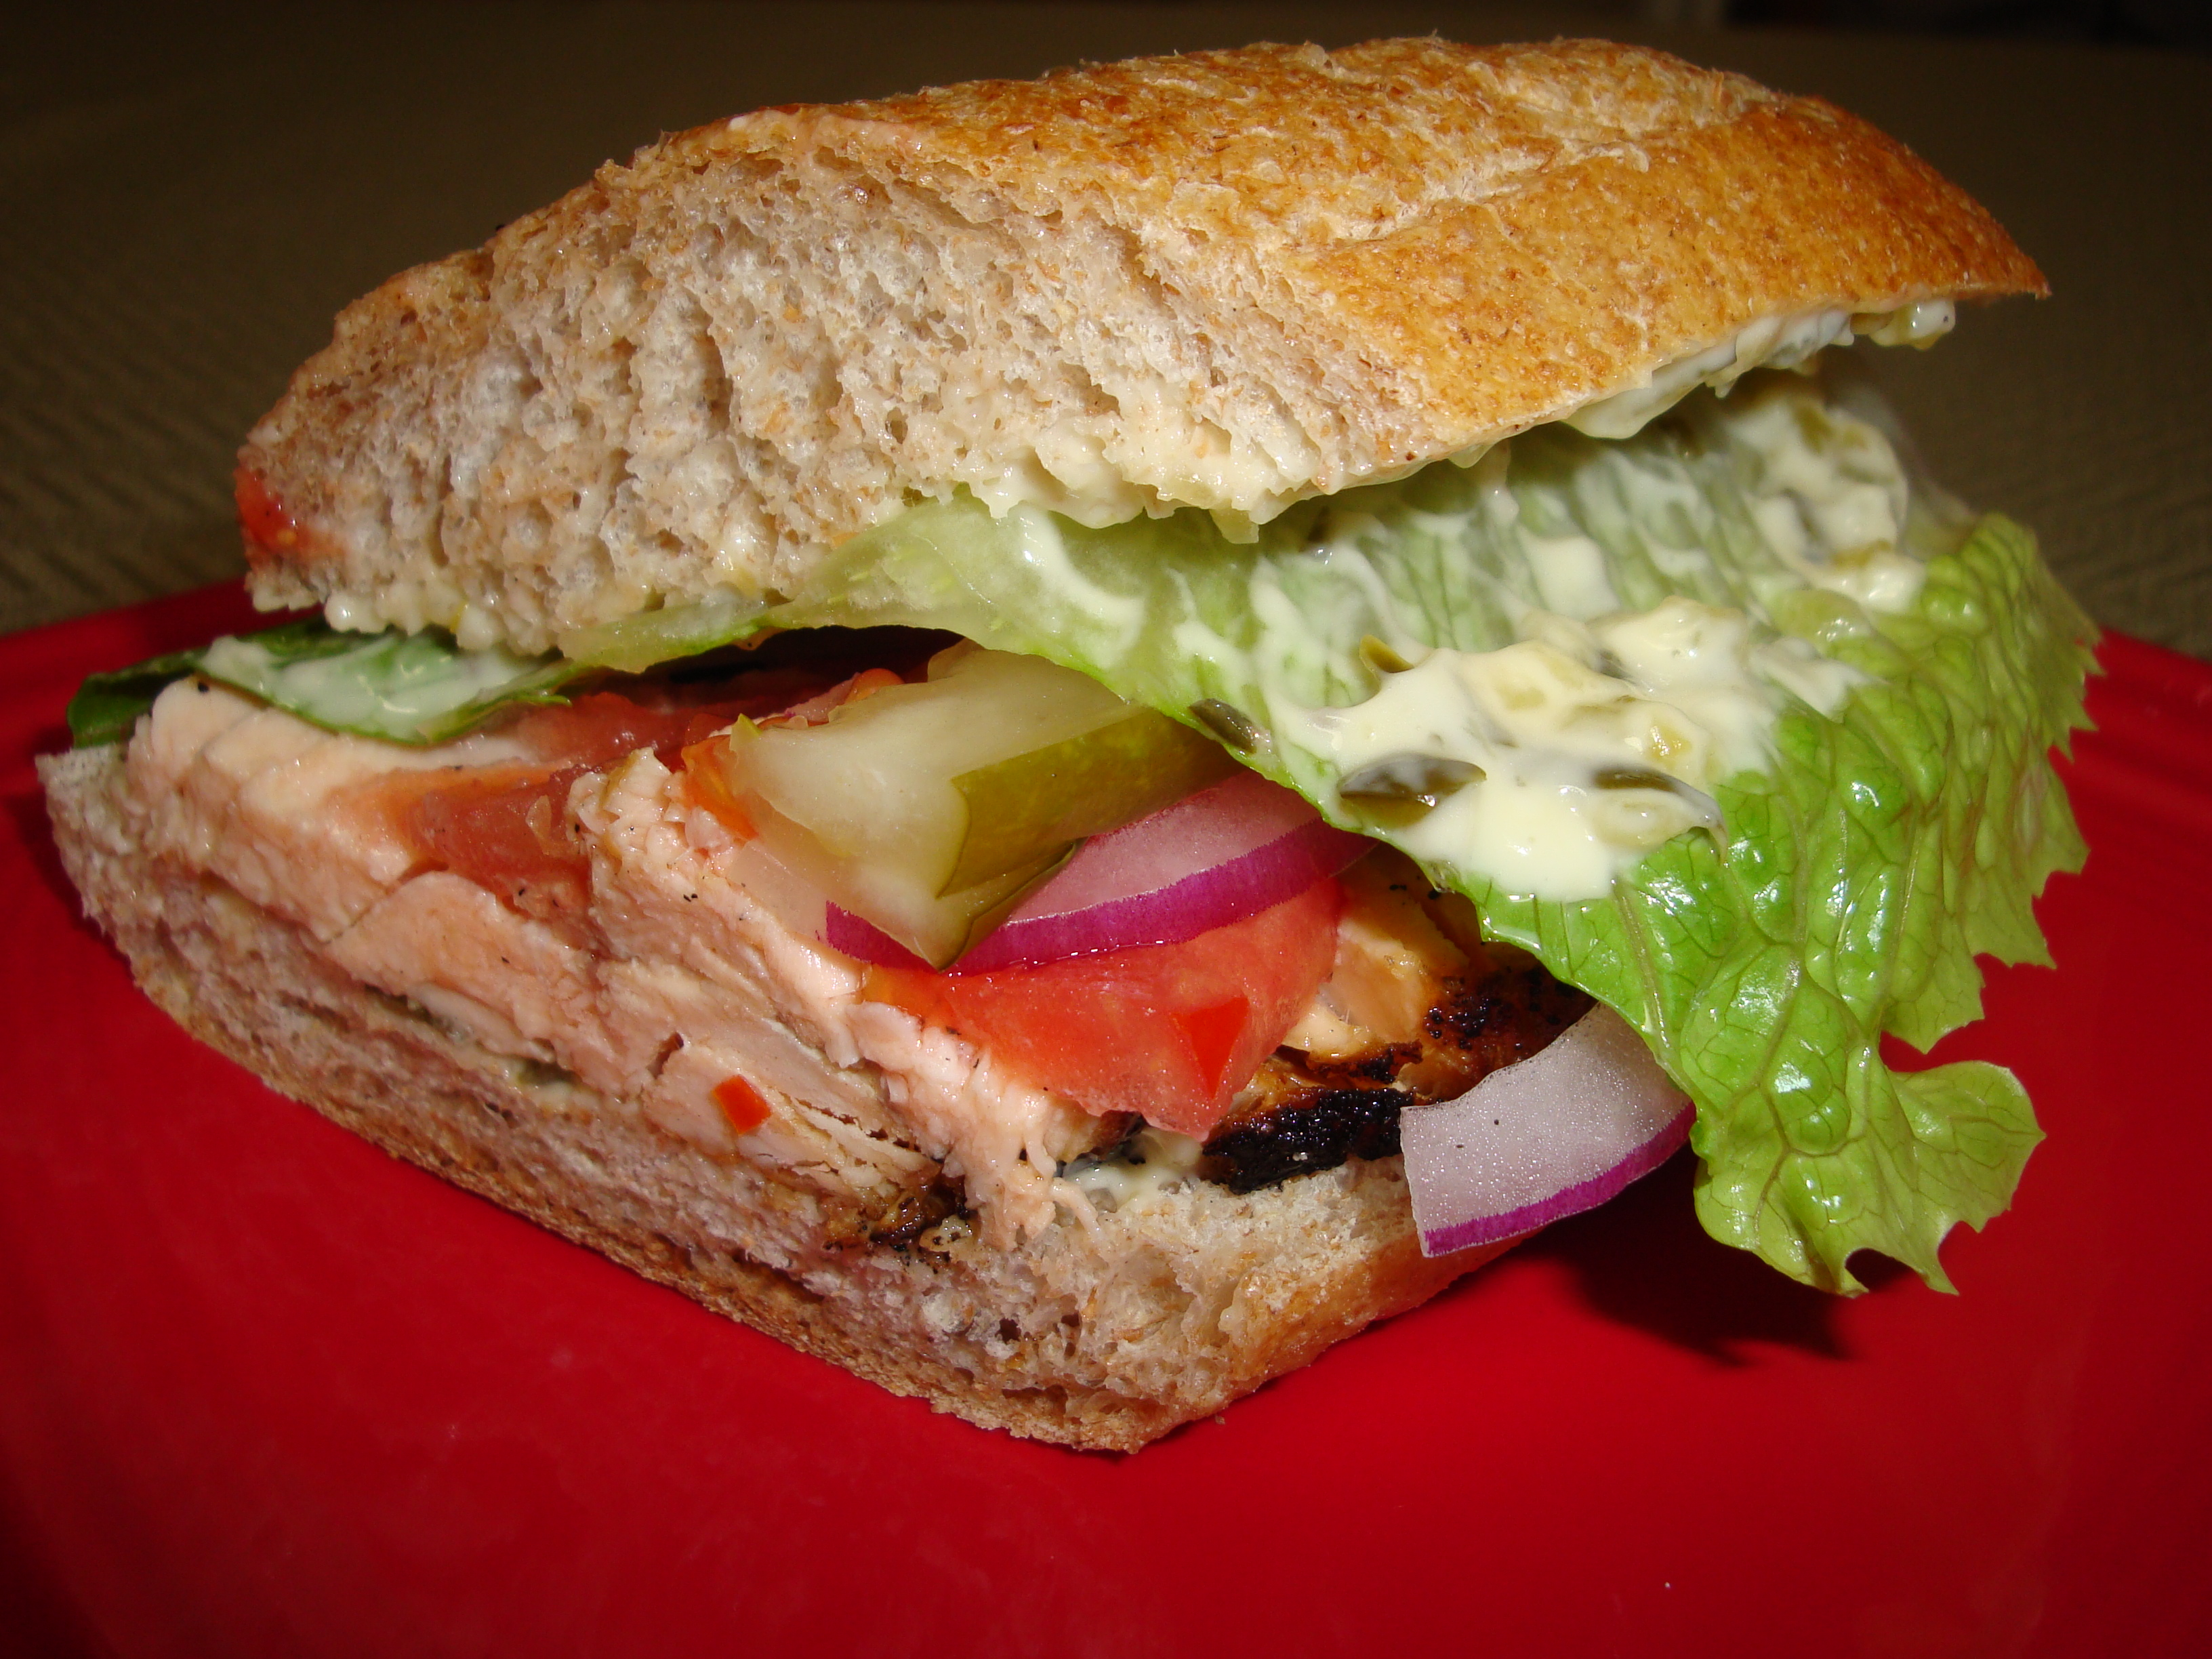 California Central Coast-Inspired Grilled Salmon Sandwich ...